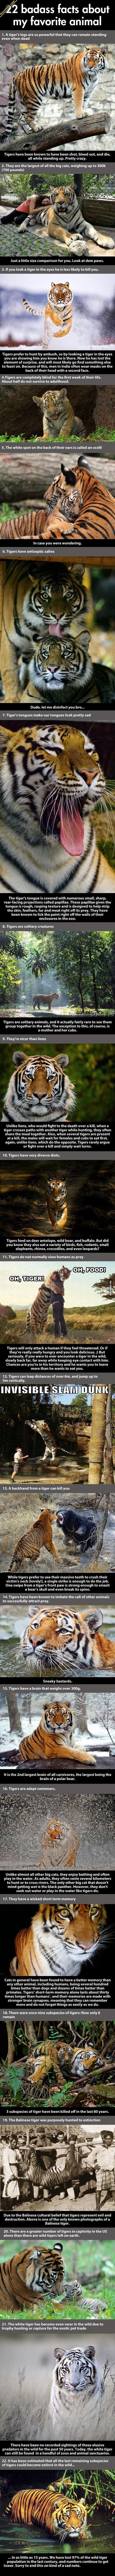 22 Badass Facts About Tigers   Click the link to view full image and description : )